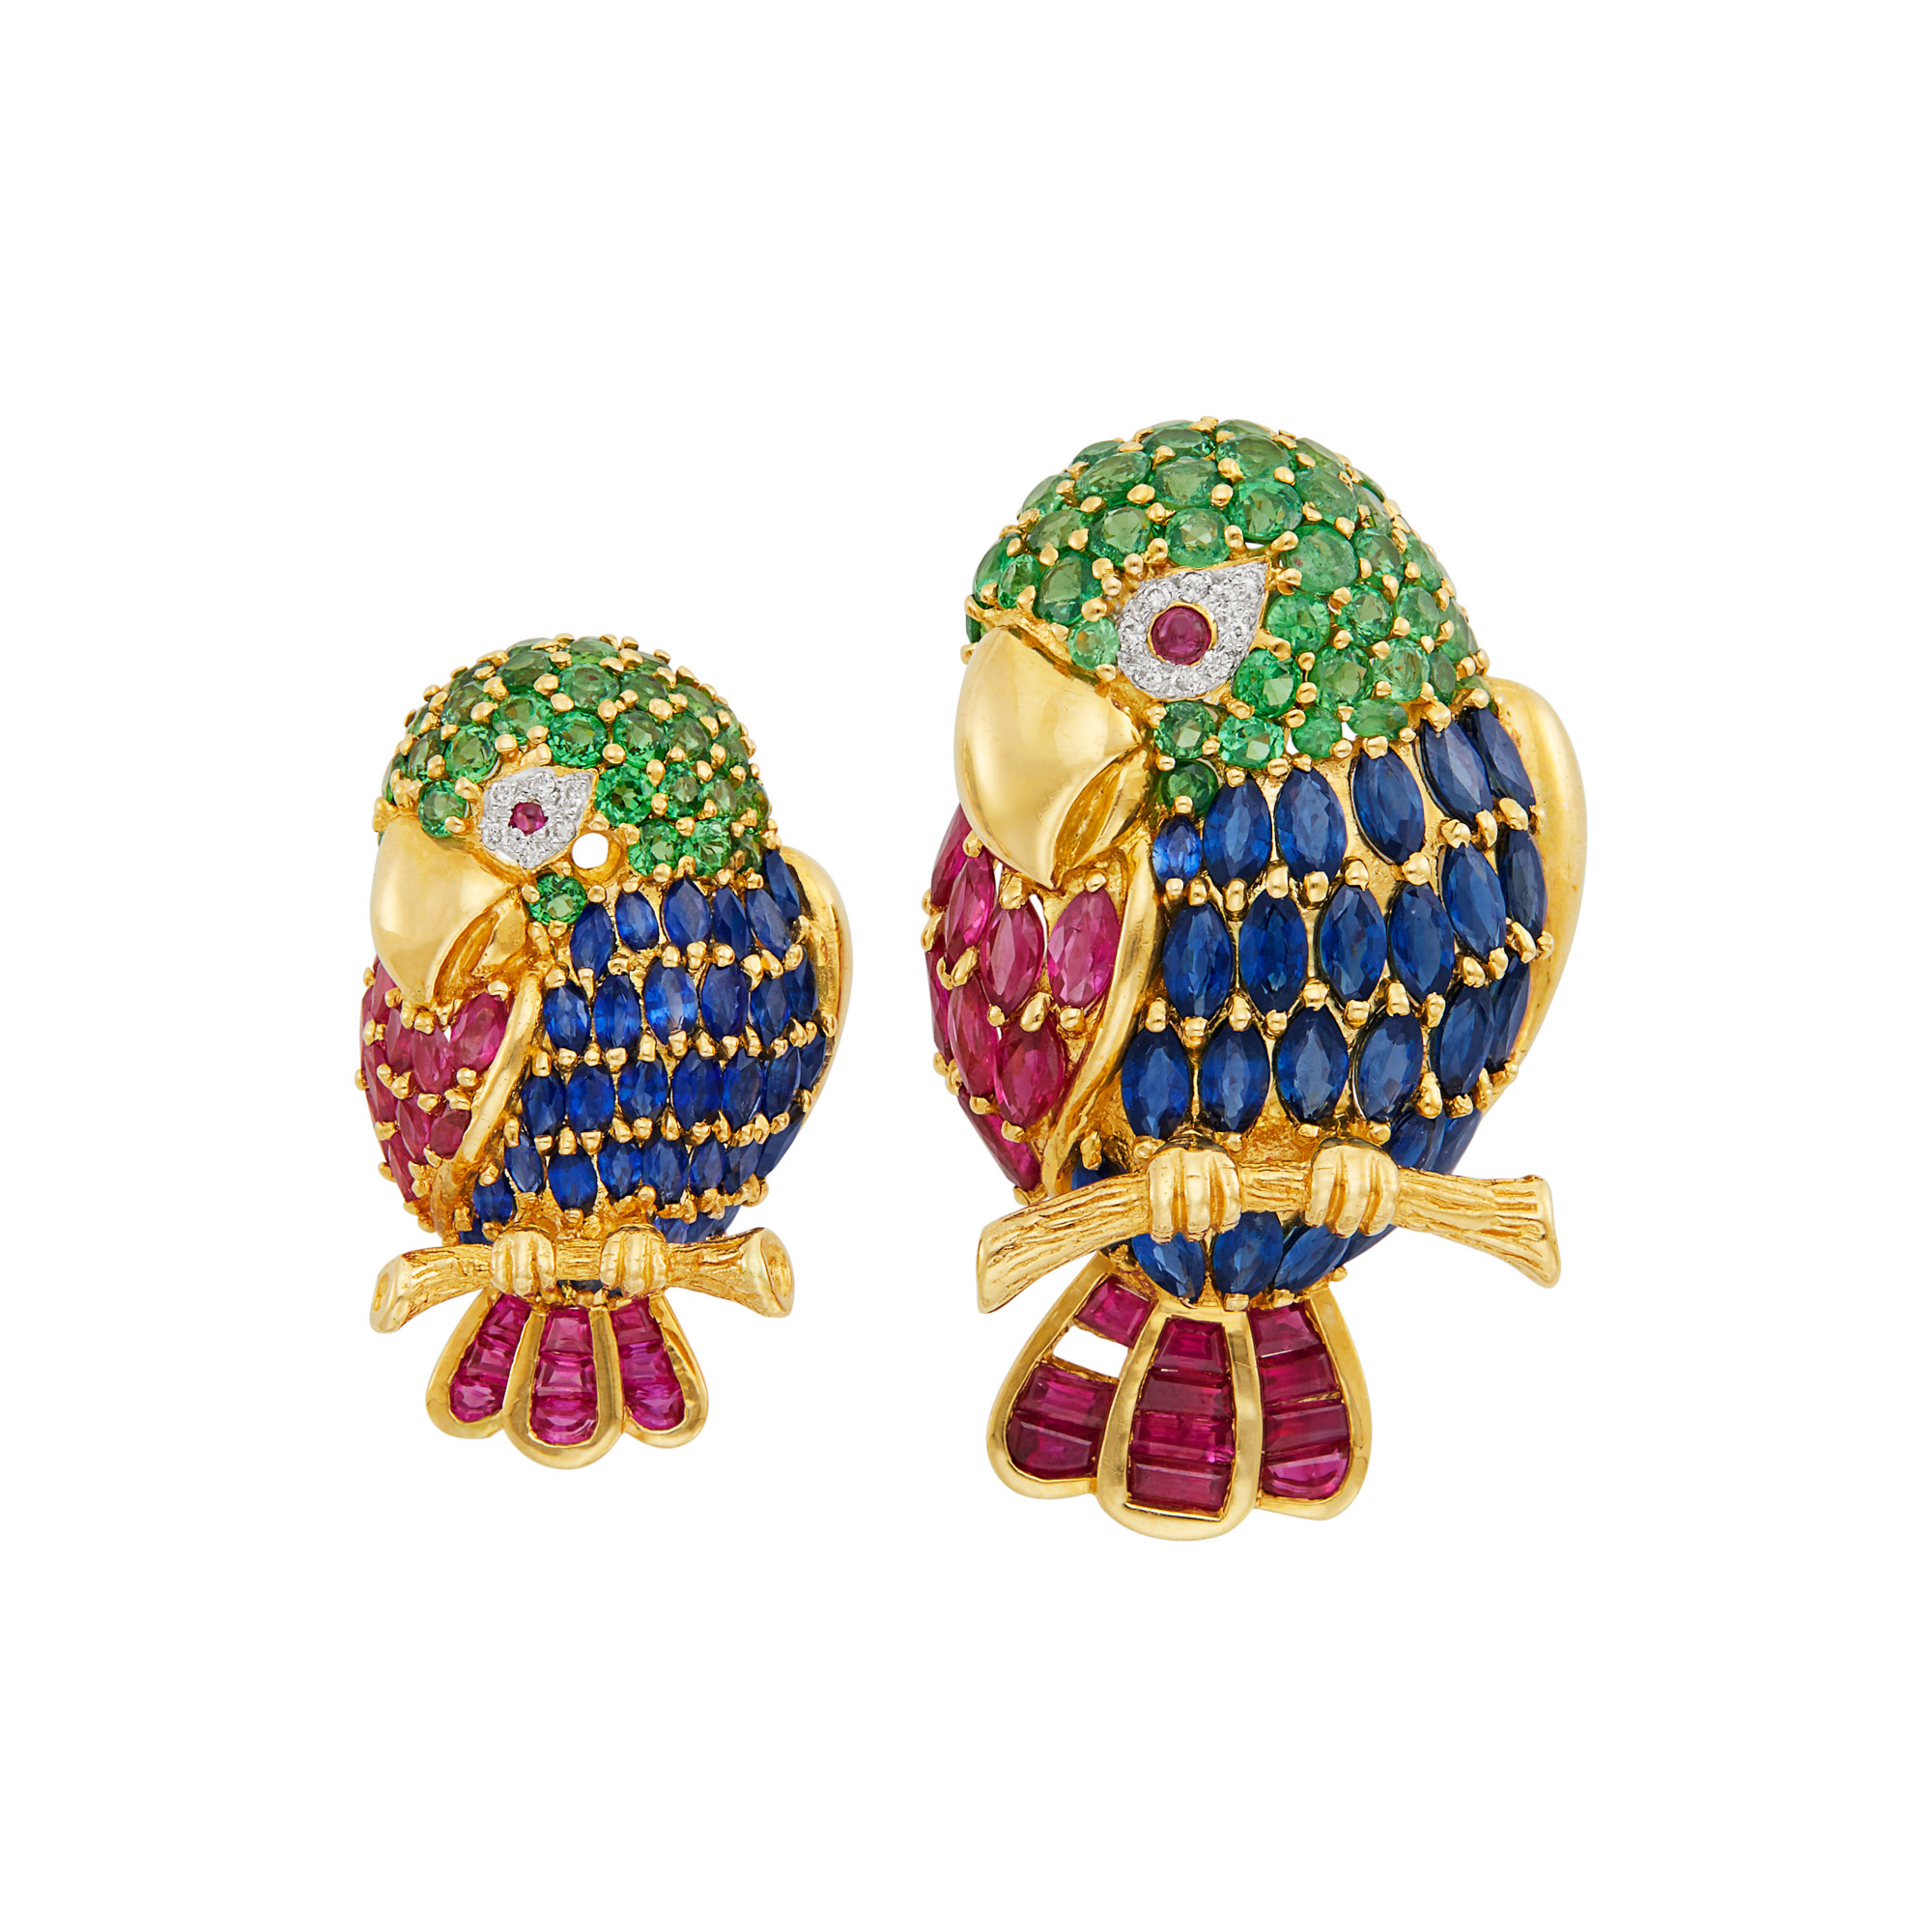 Lot image - Pair of Gold, Gem-Set and Diamond Bird Brooches